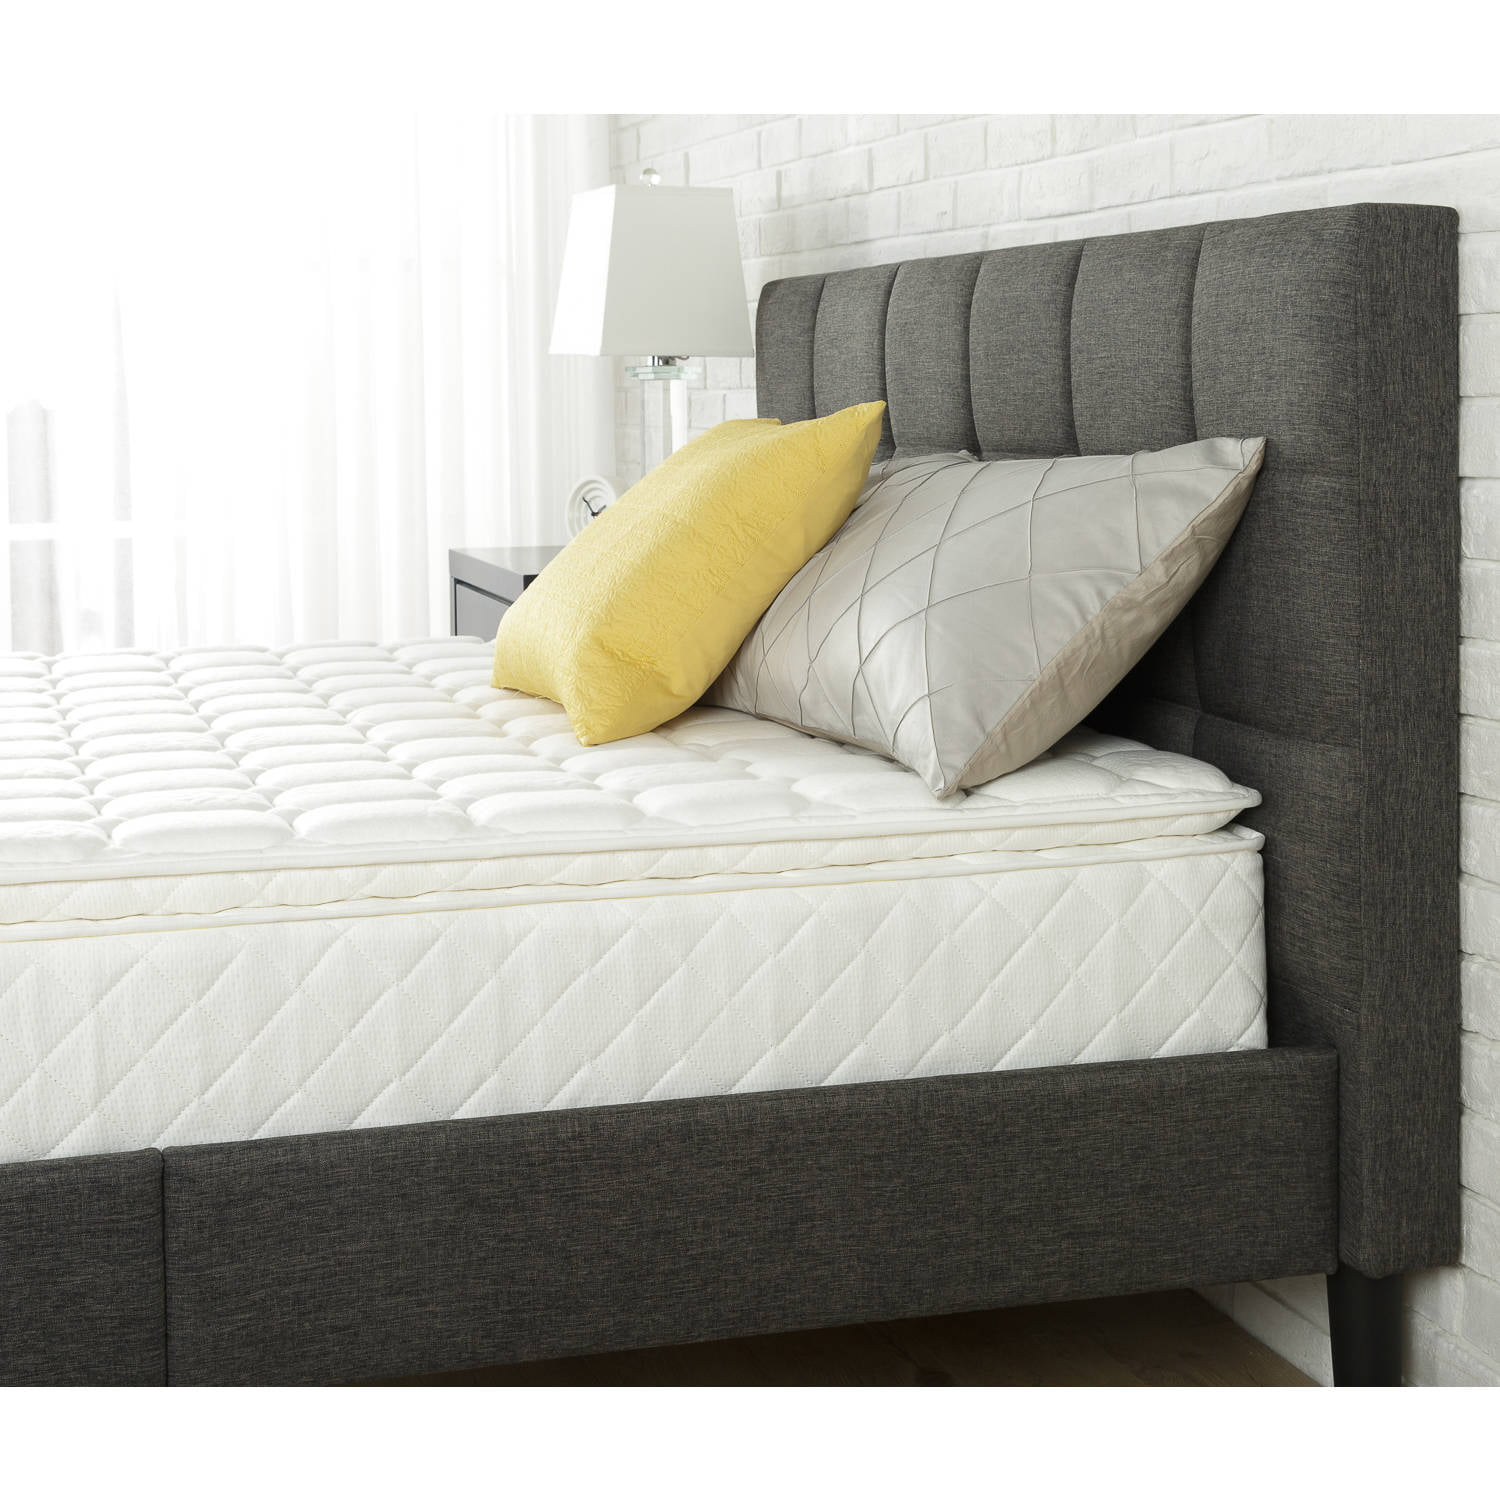 king beautiful of pillow top queen and cover quot serta walmart mattress size topper memory foam